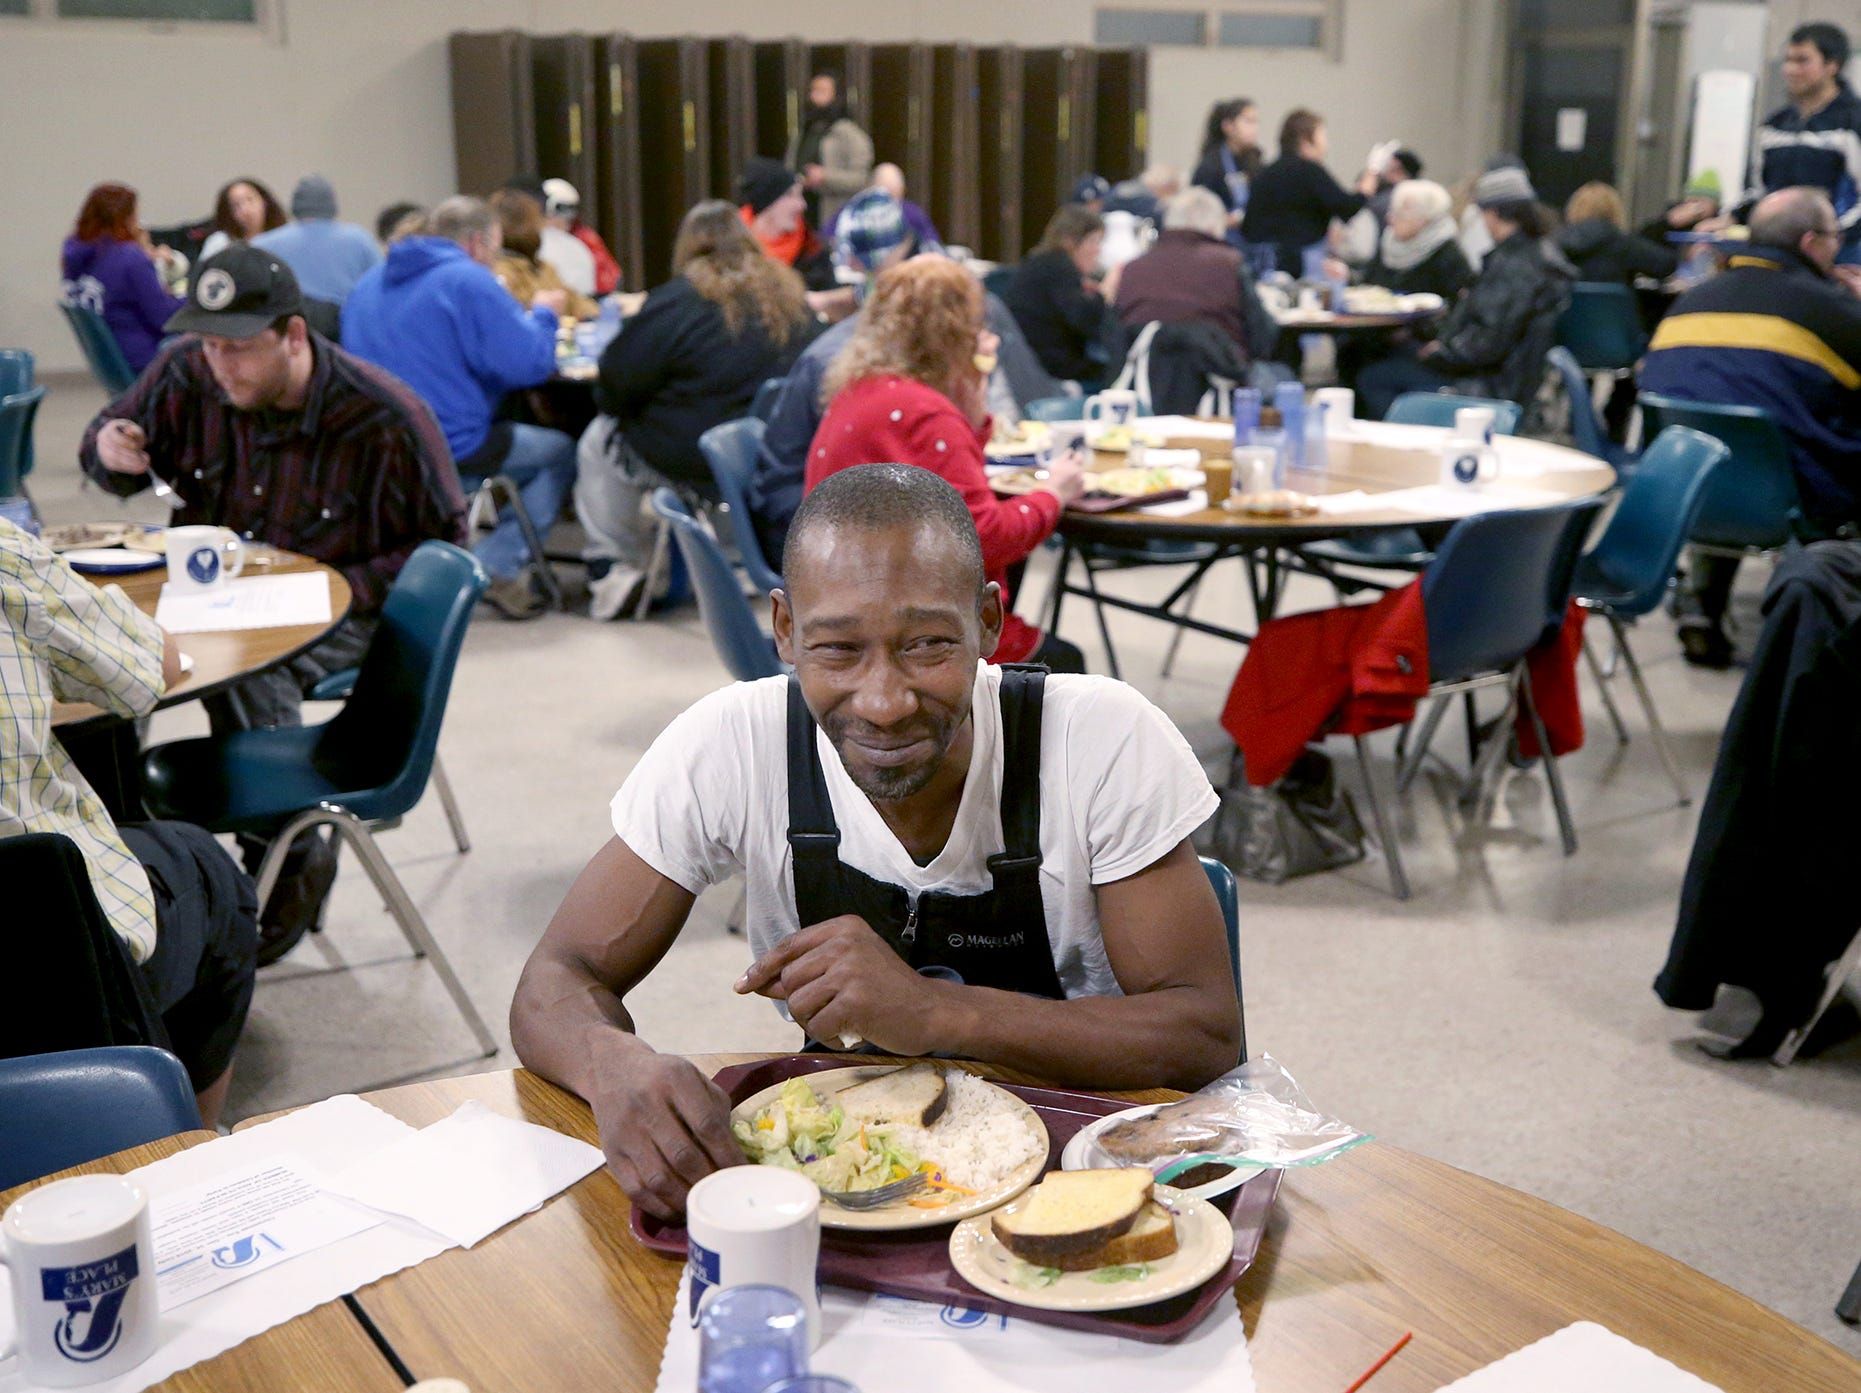 Lashon Little enjoys a hot meal at Mary's Place, a free meal for the homeless and hungry at Our Lady Star of the Sea Catholic Church in Bremerton. The meal is every Monday evening in Camerman Hall in the basement of the church. The meal has been in operation for four years.